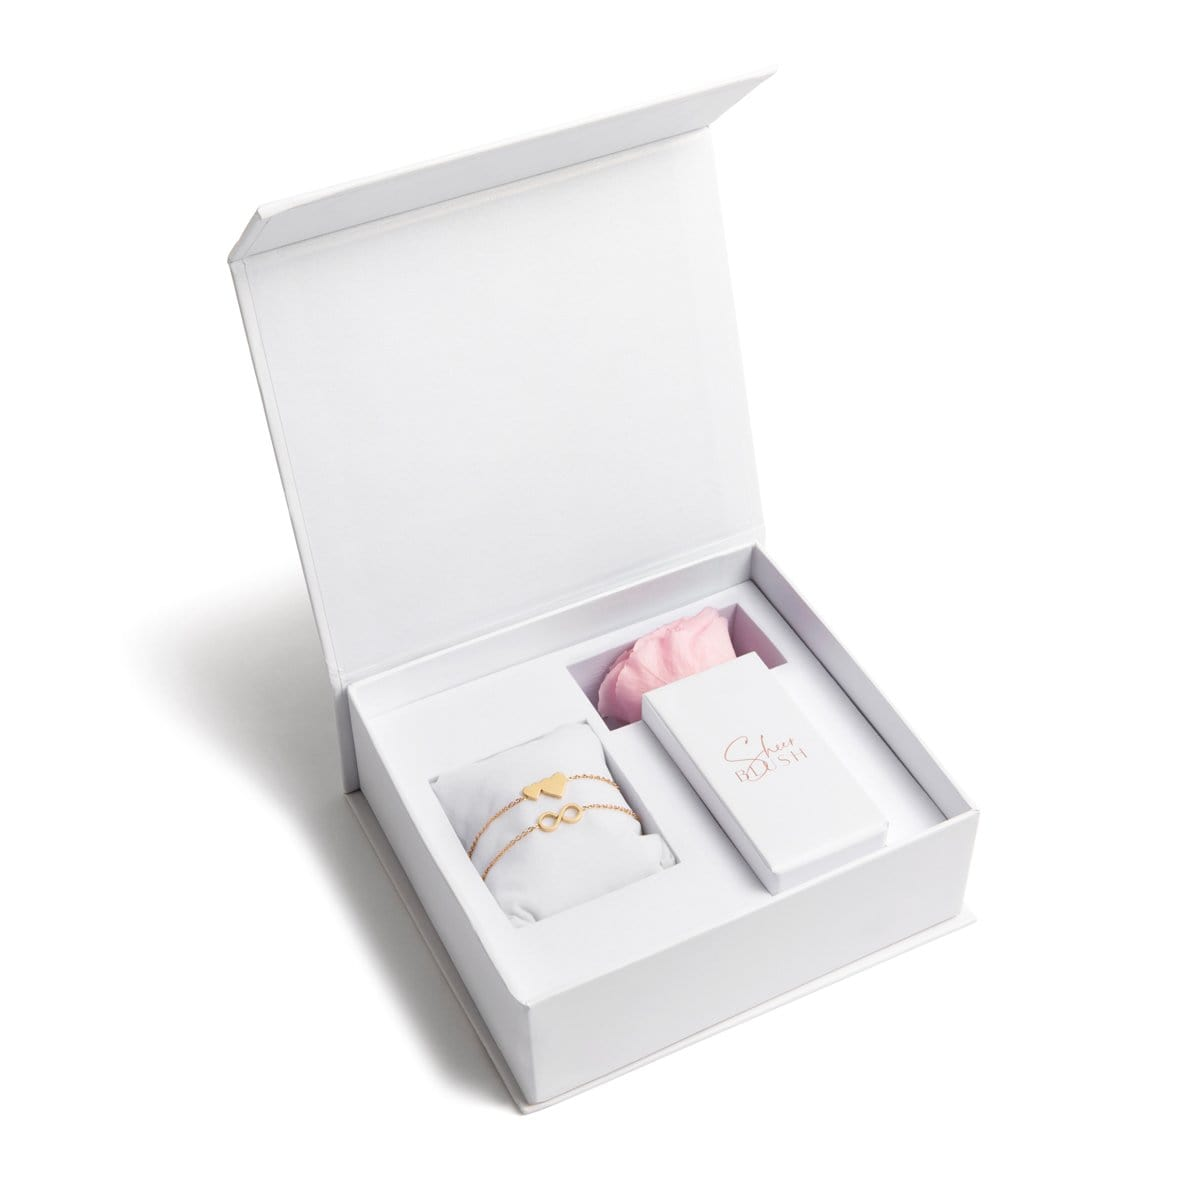 The Gold Infinite Love Eternal Rose Gift Set (Blush)